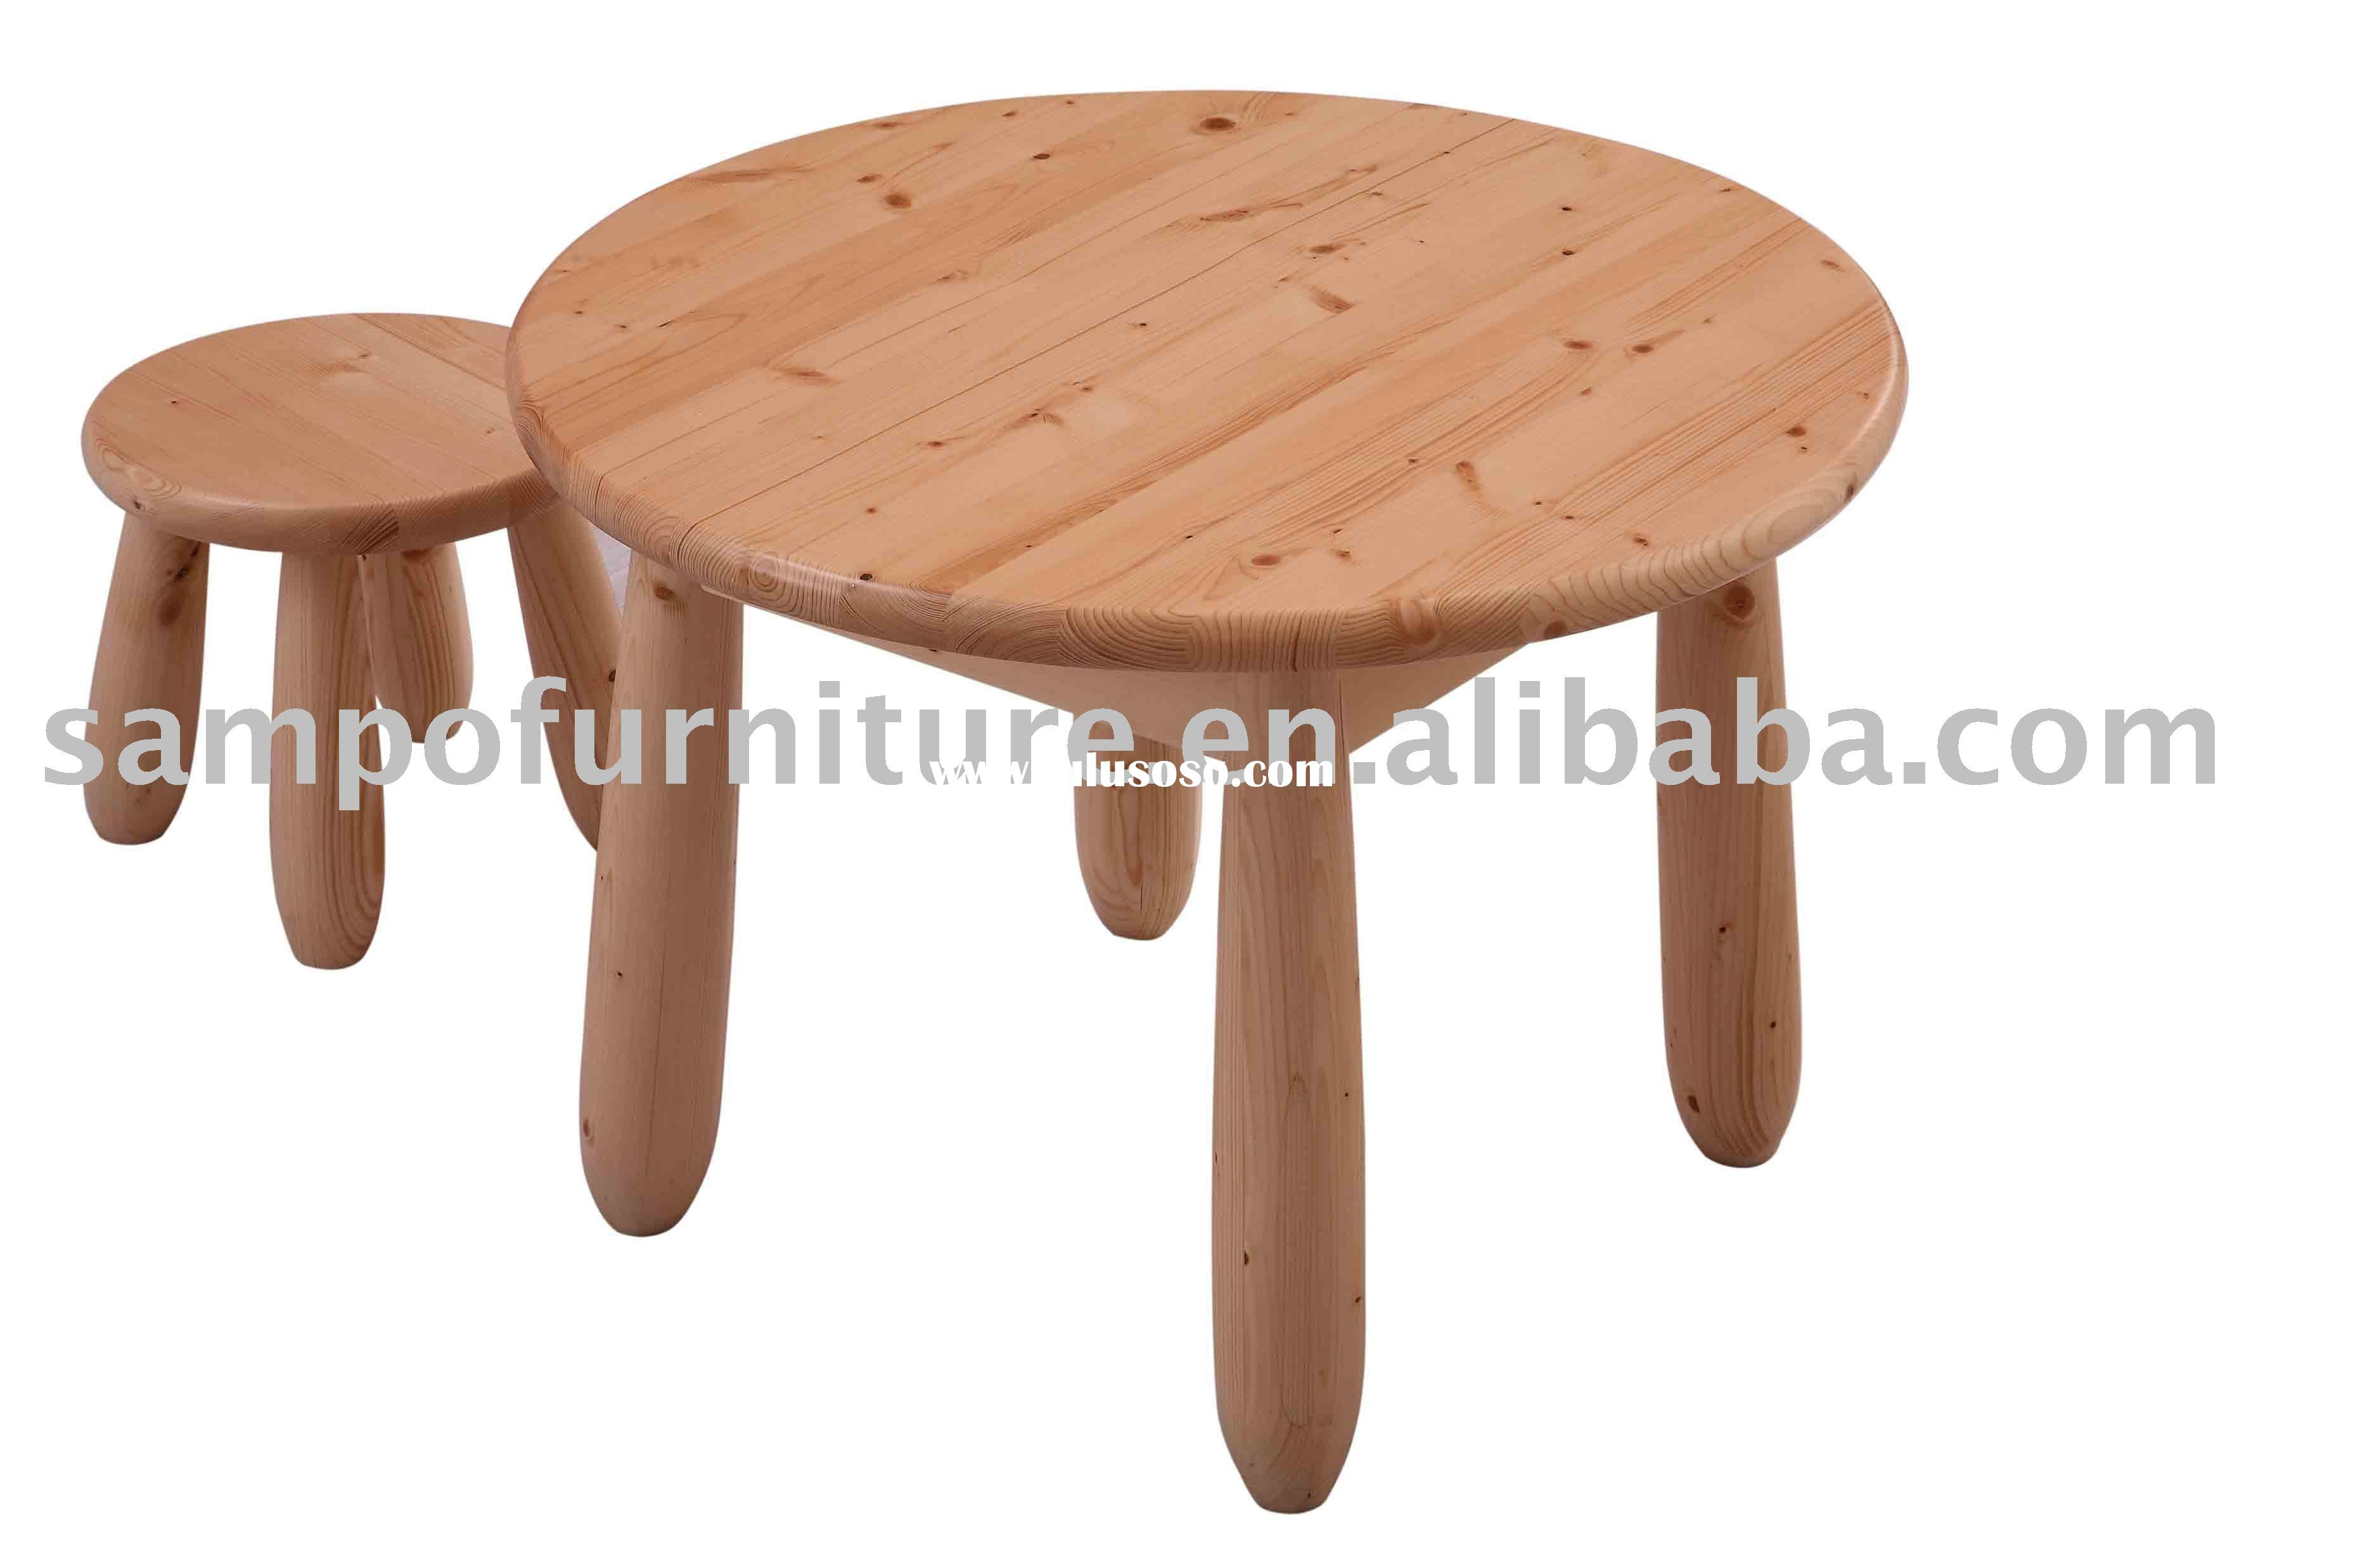 Small round kids table - Kids Wooden Table